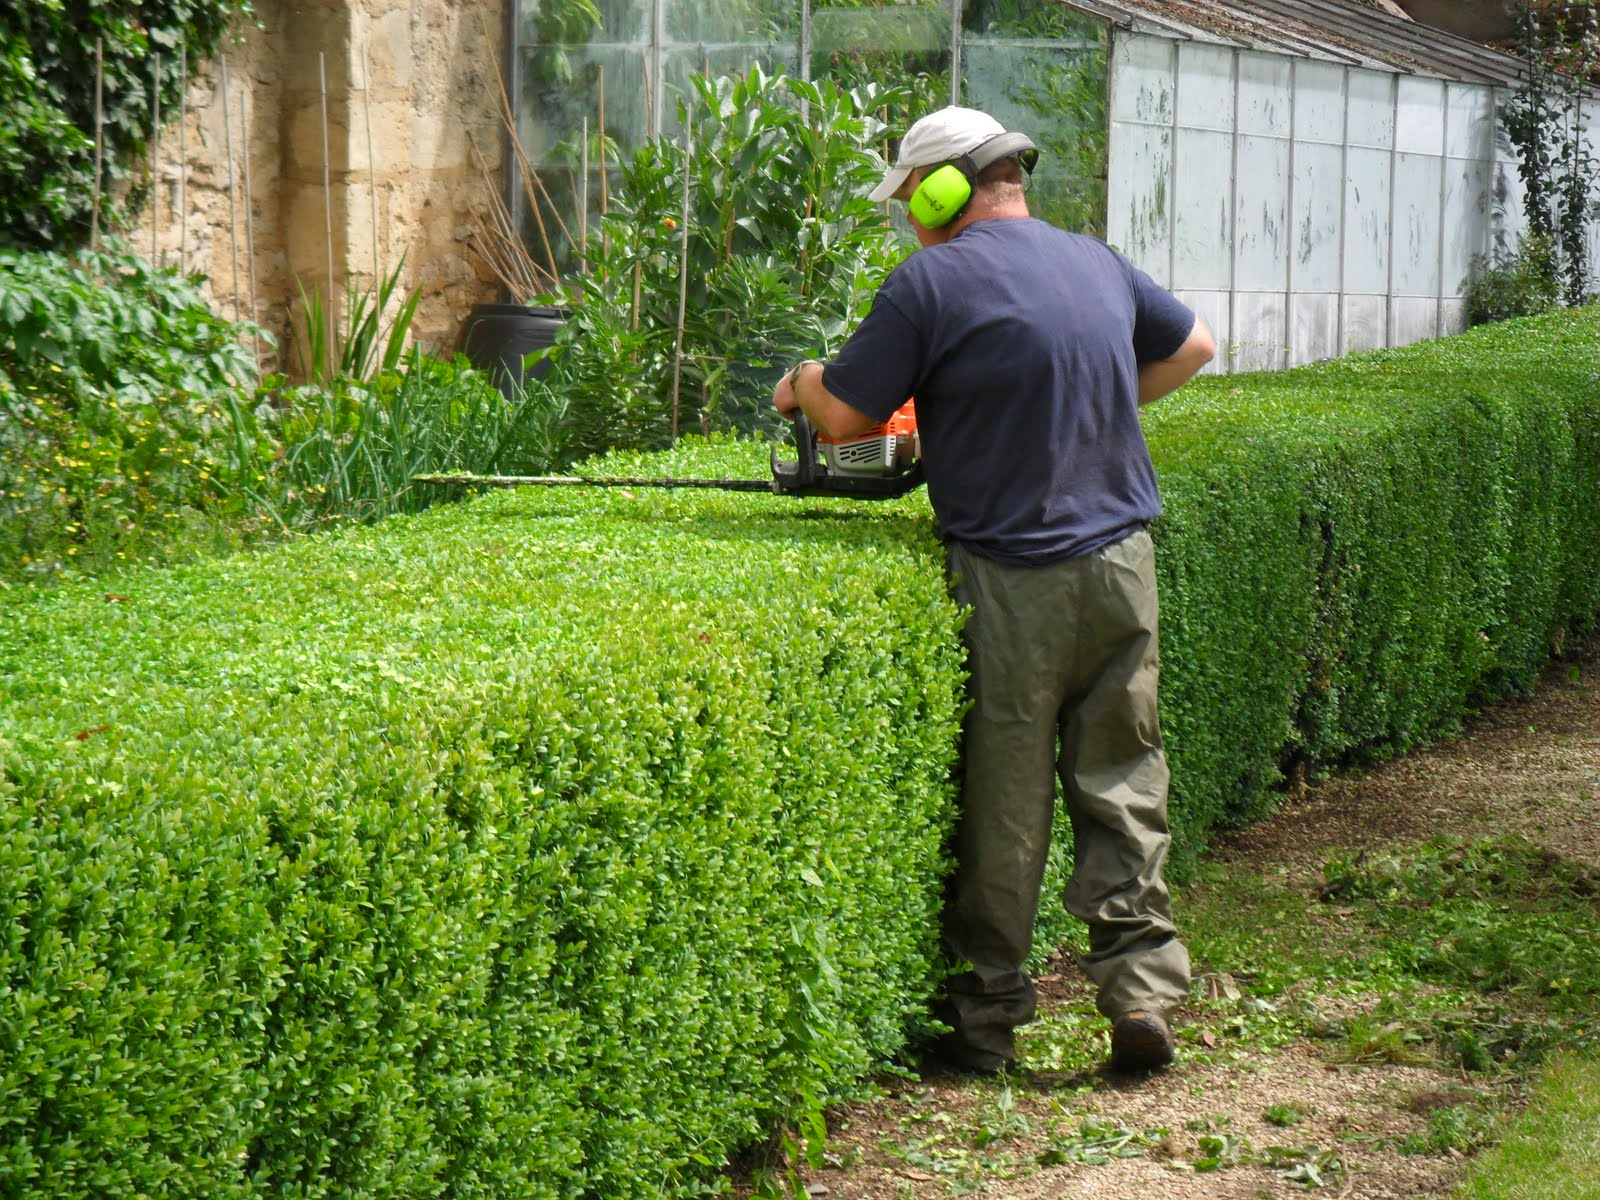 hedge-trimming-business-with-a-strong-clientele-base-1